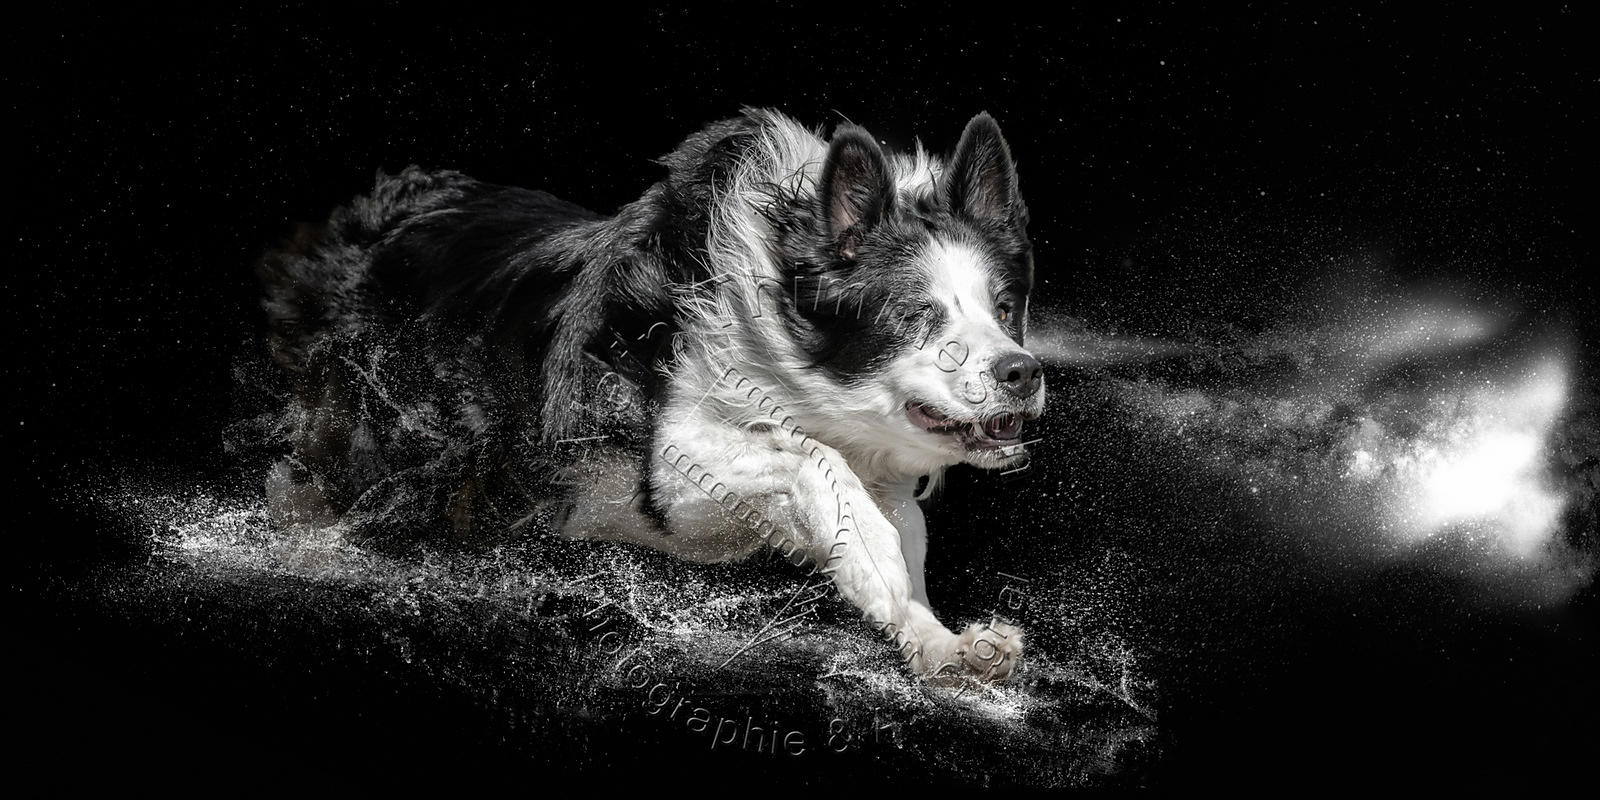 2020-Art-Digital-Alain-Thimmesch-Chien-6